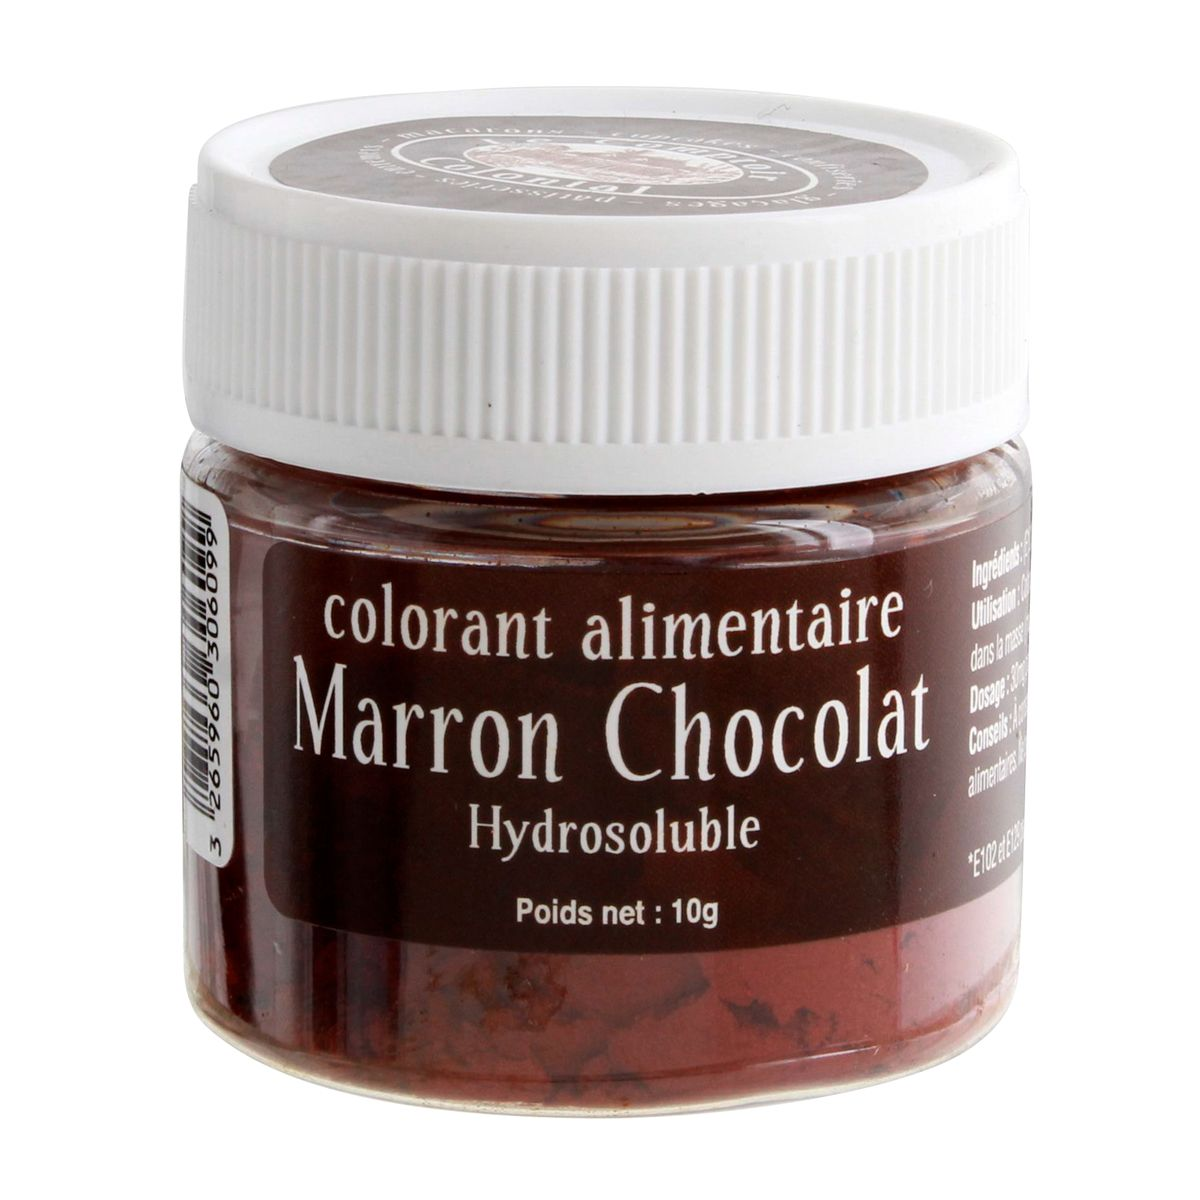 Colorant alimentaire hydrosoluble marron chocolat 10 gr - Le Comptoir Colonial